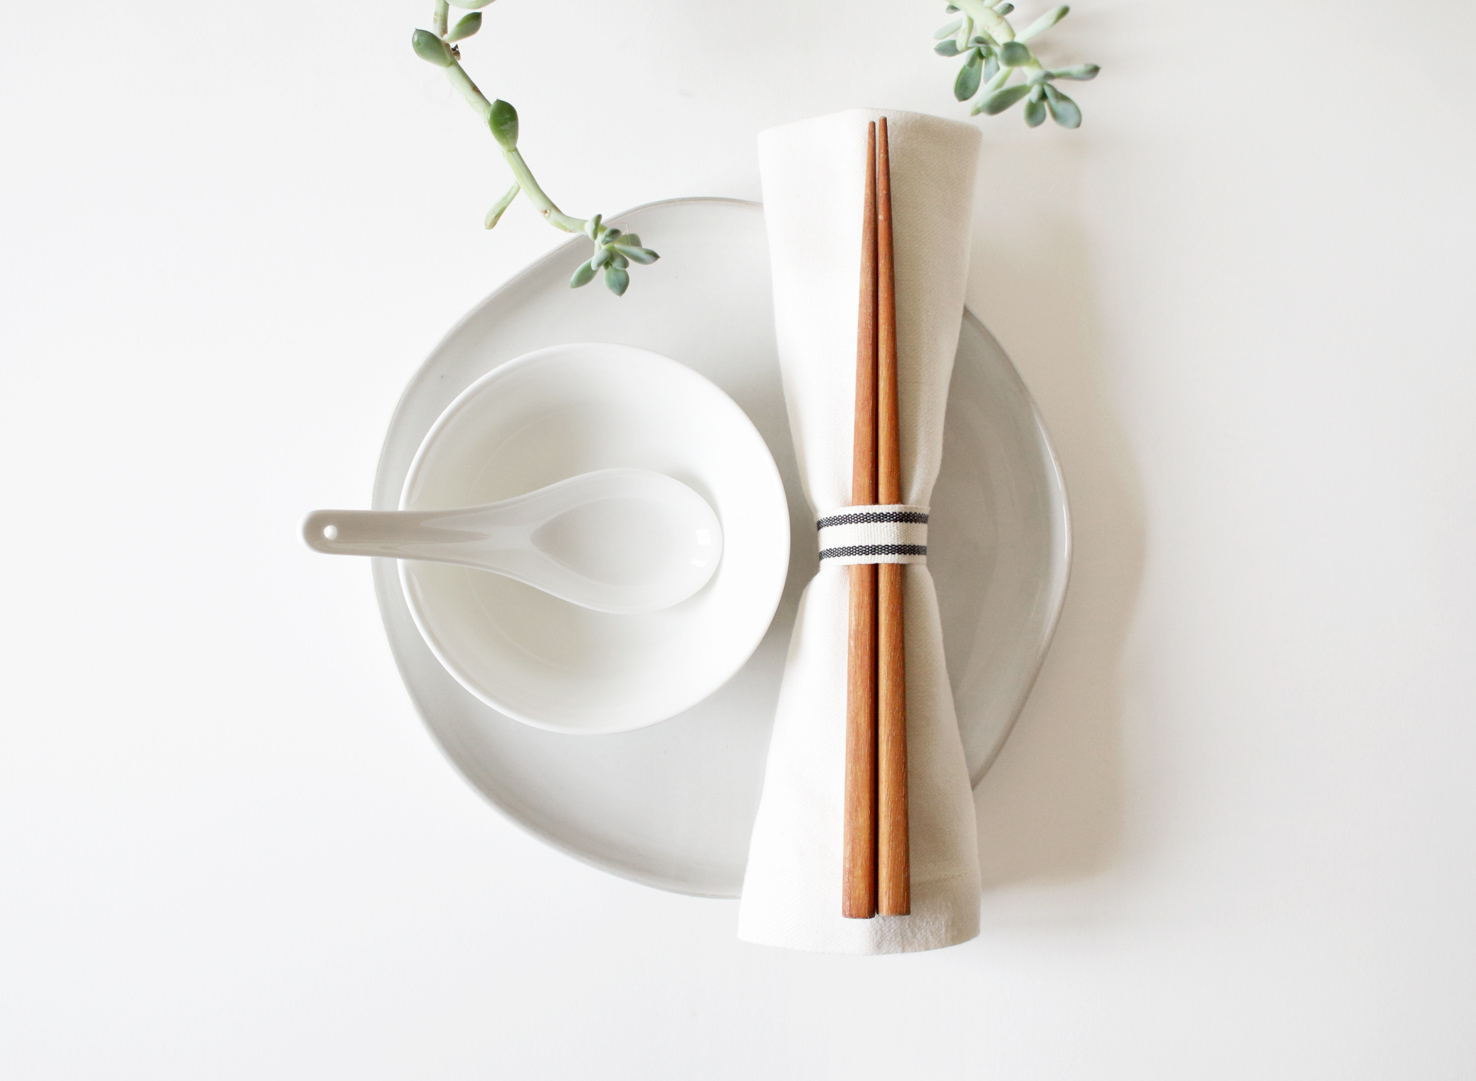 ... Asian place setting & Clean and Chic Table Settings for Any Cuisine | BAY ON A BUDGET